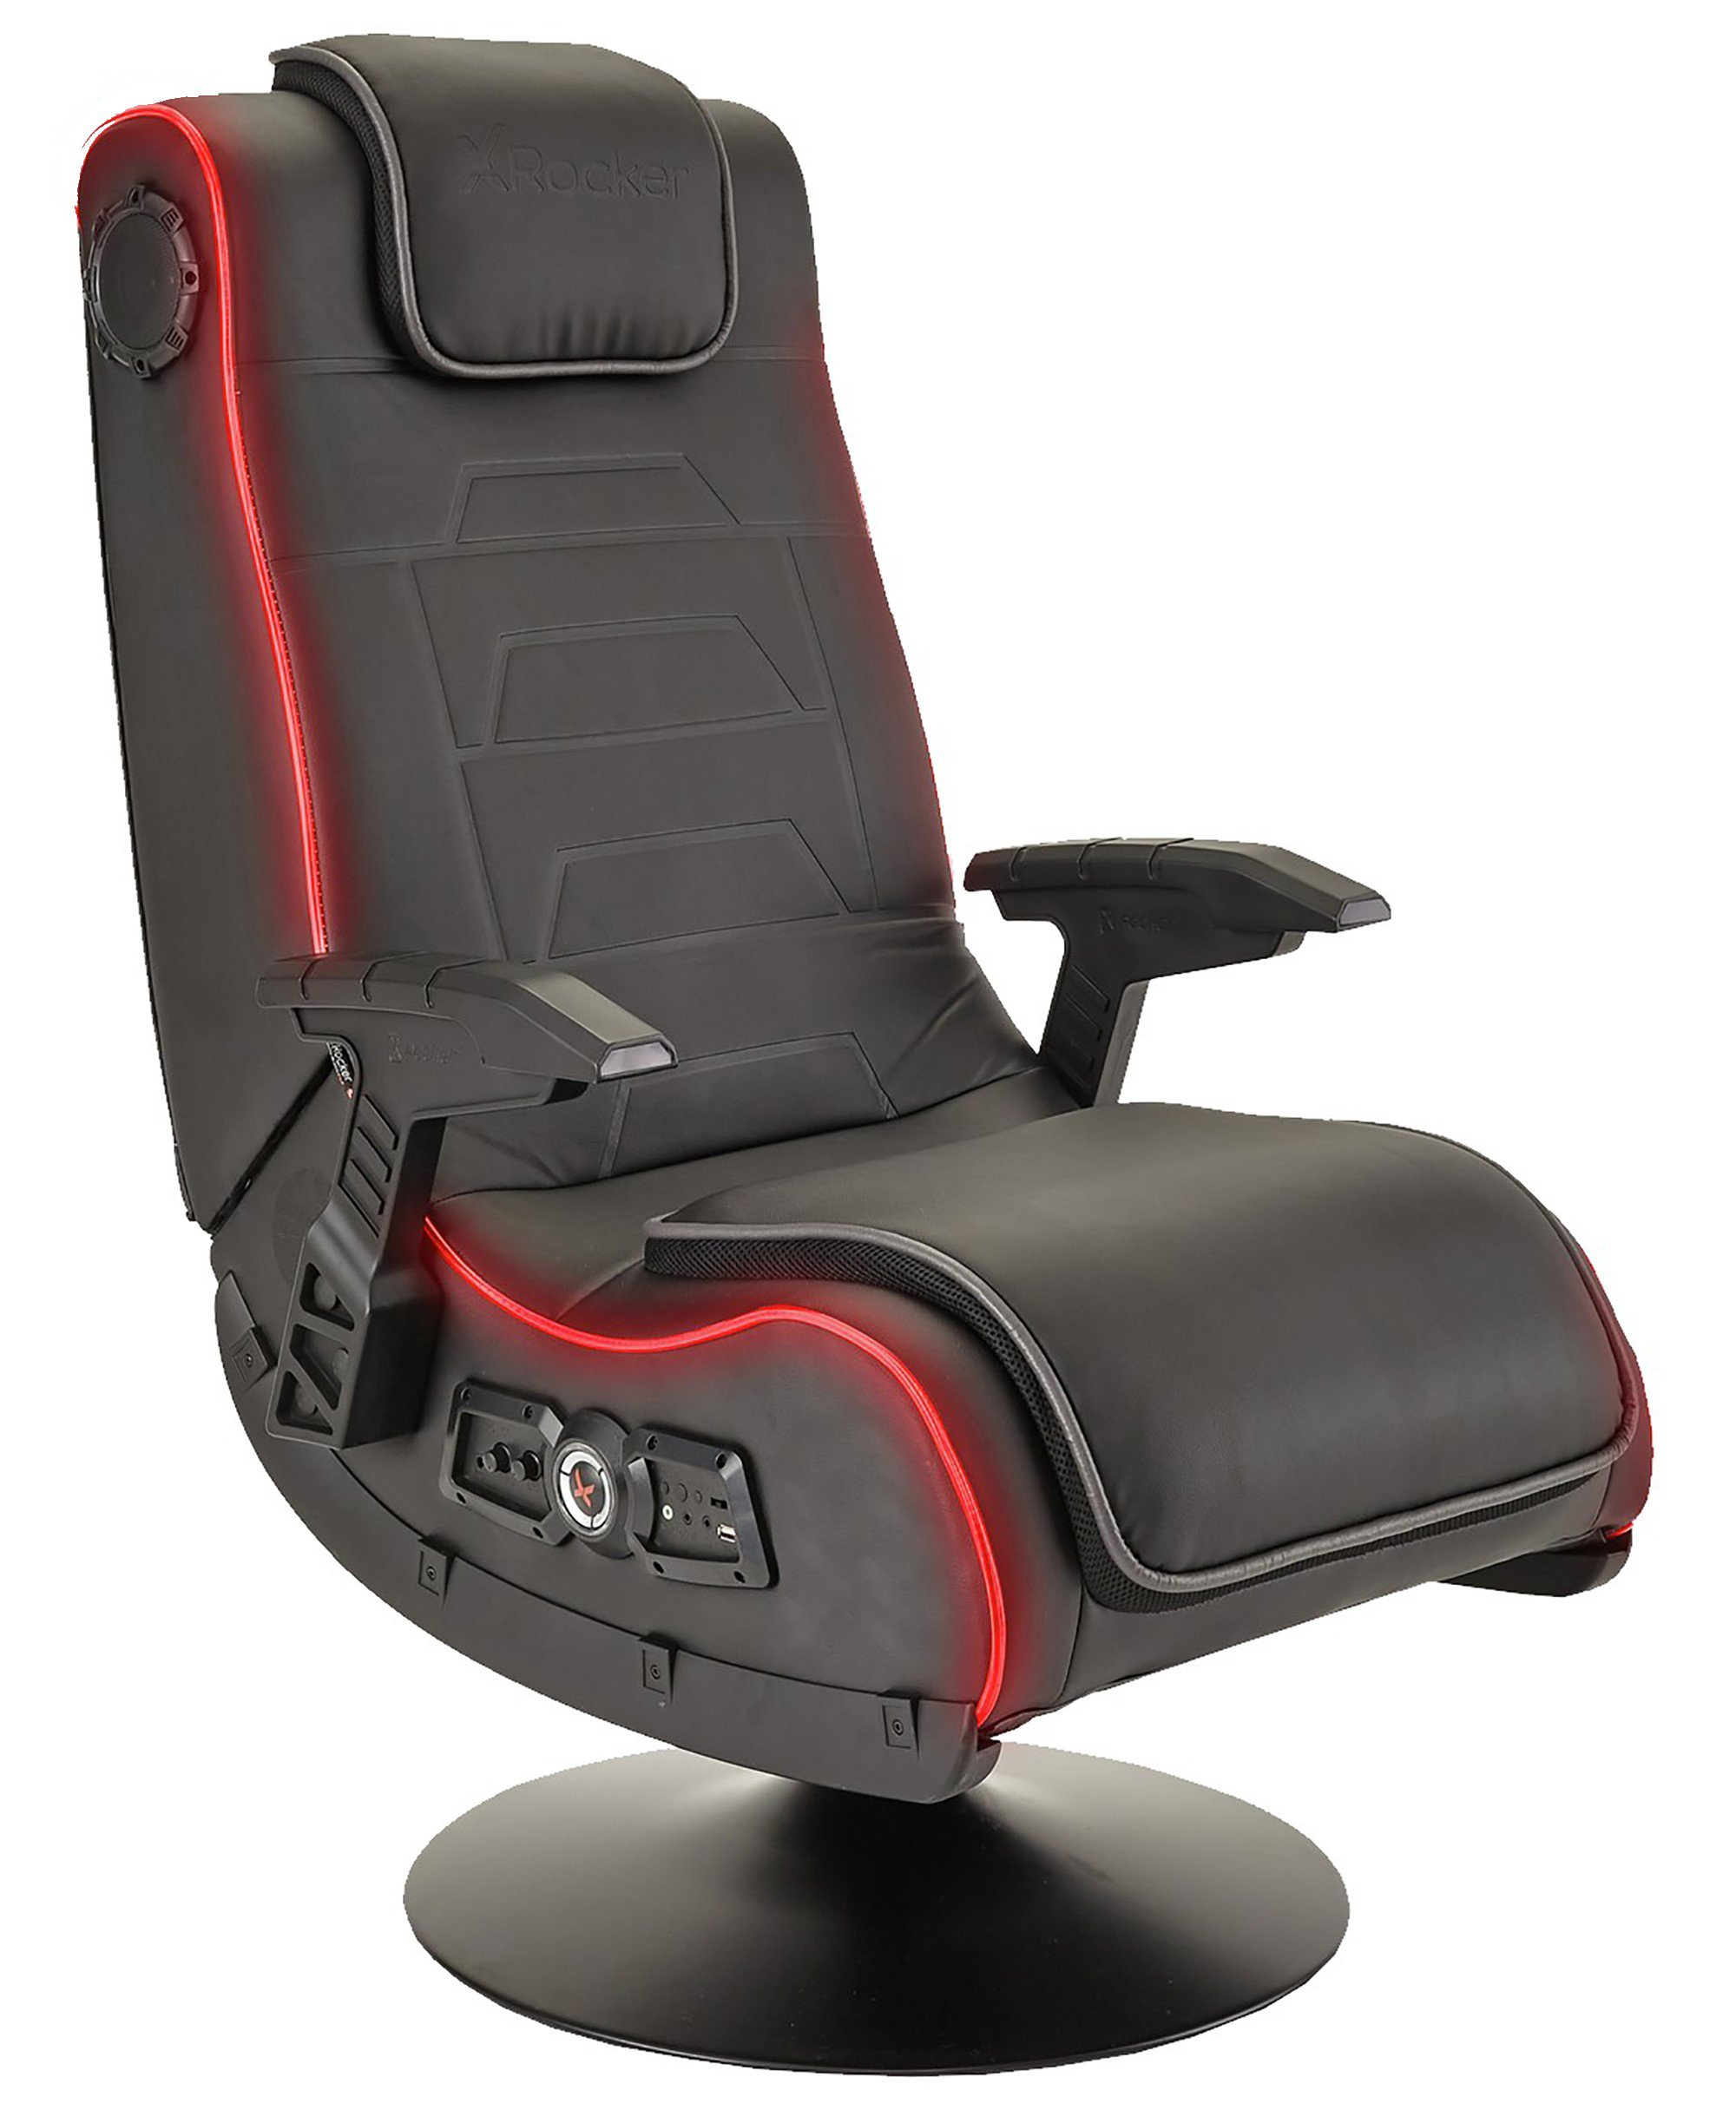 pro gaming chairs uk eames lounge chair for sale argos x rocker new evo